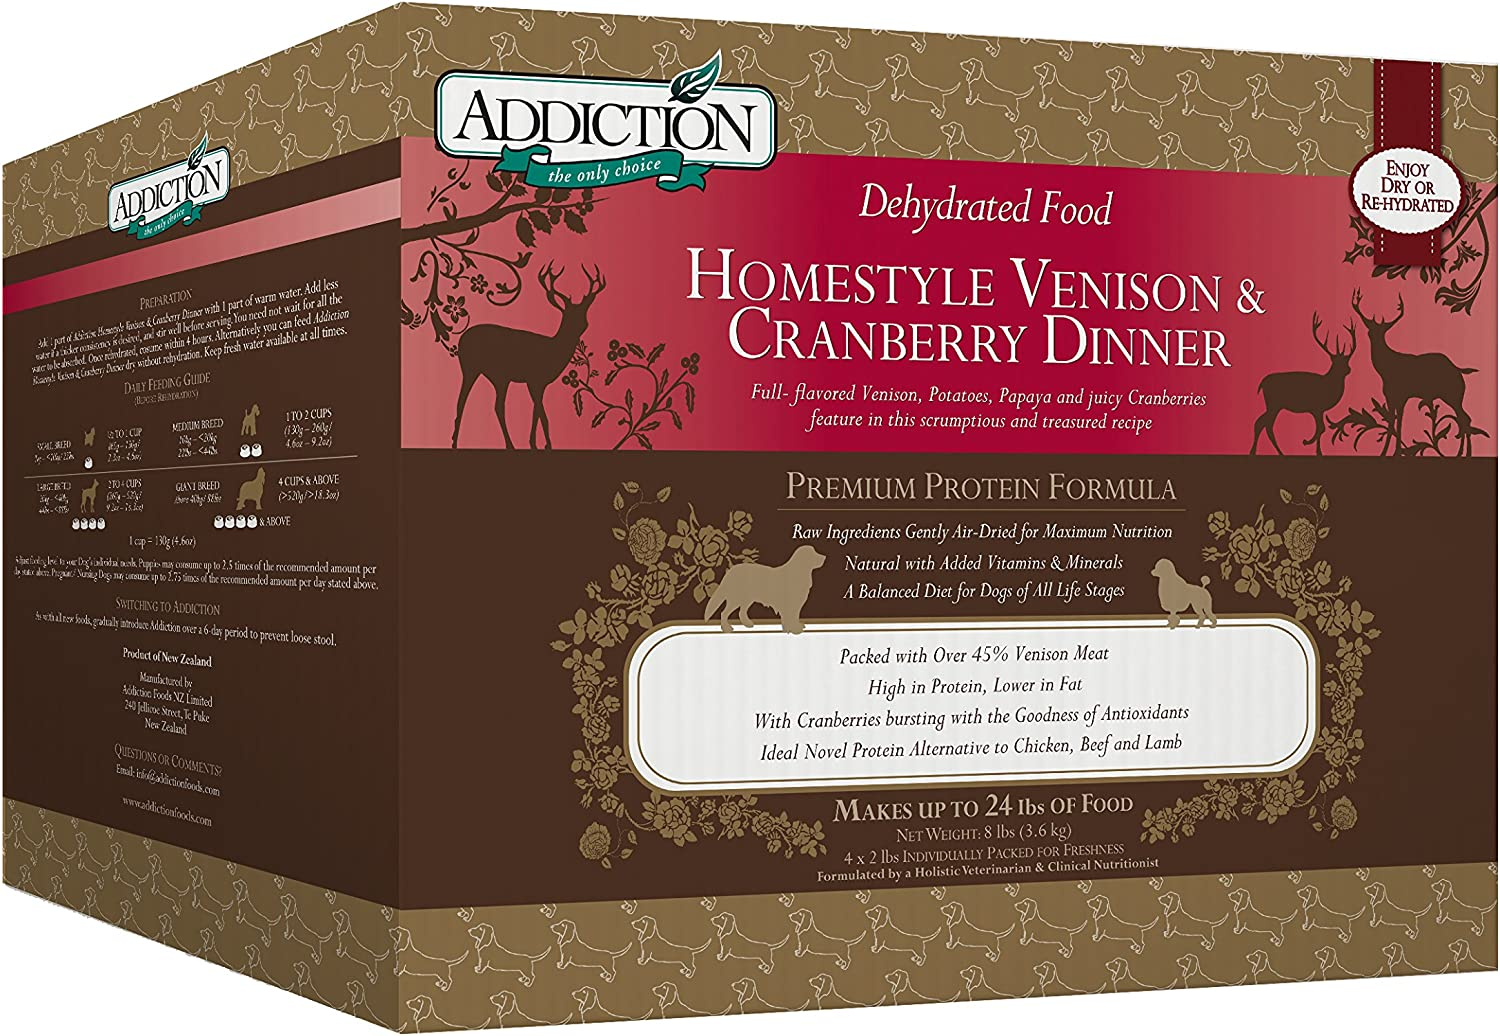 Addiction Homestyle Venison & Cranberry Filler Free Dehydrated Dog Food, 8 Lb.